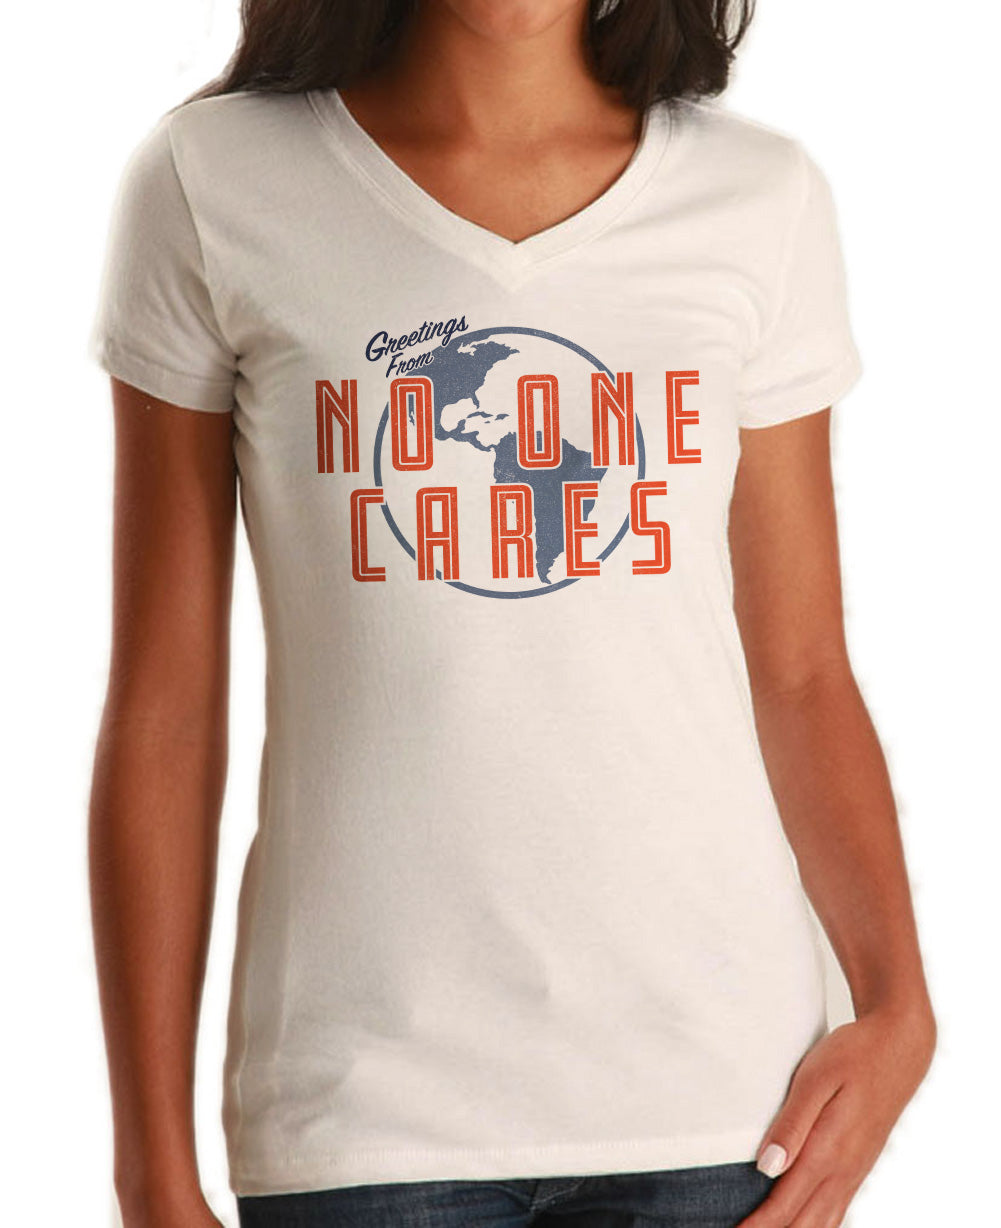 Women's Greetings From No One Cares Vneck T-Shirt